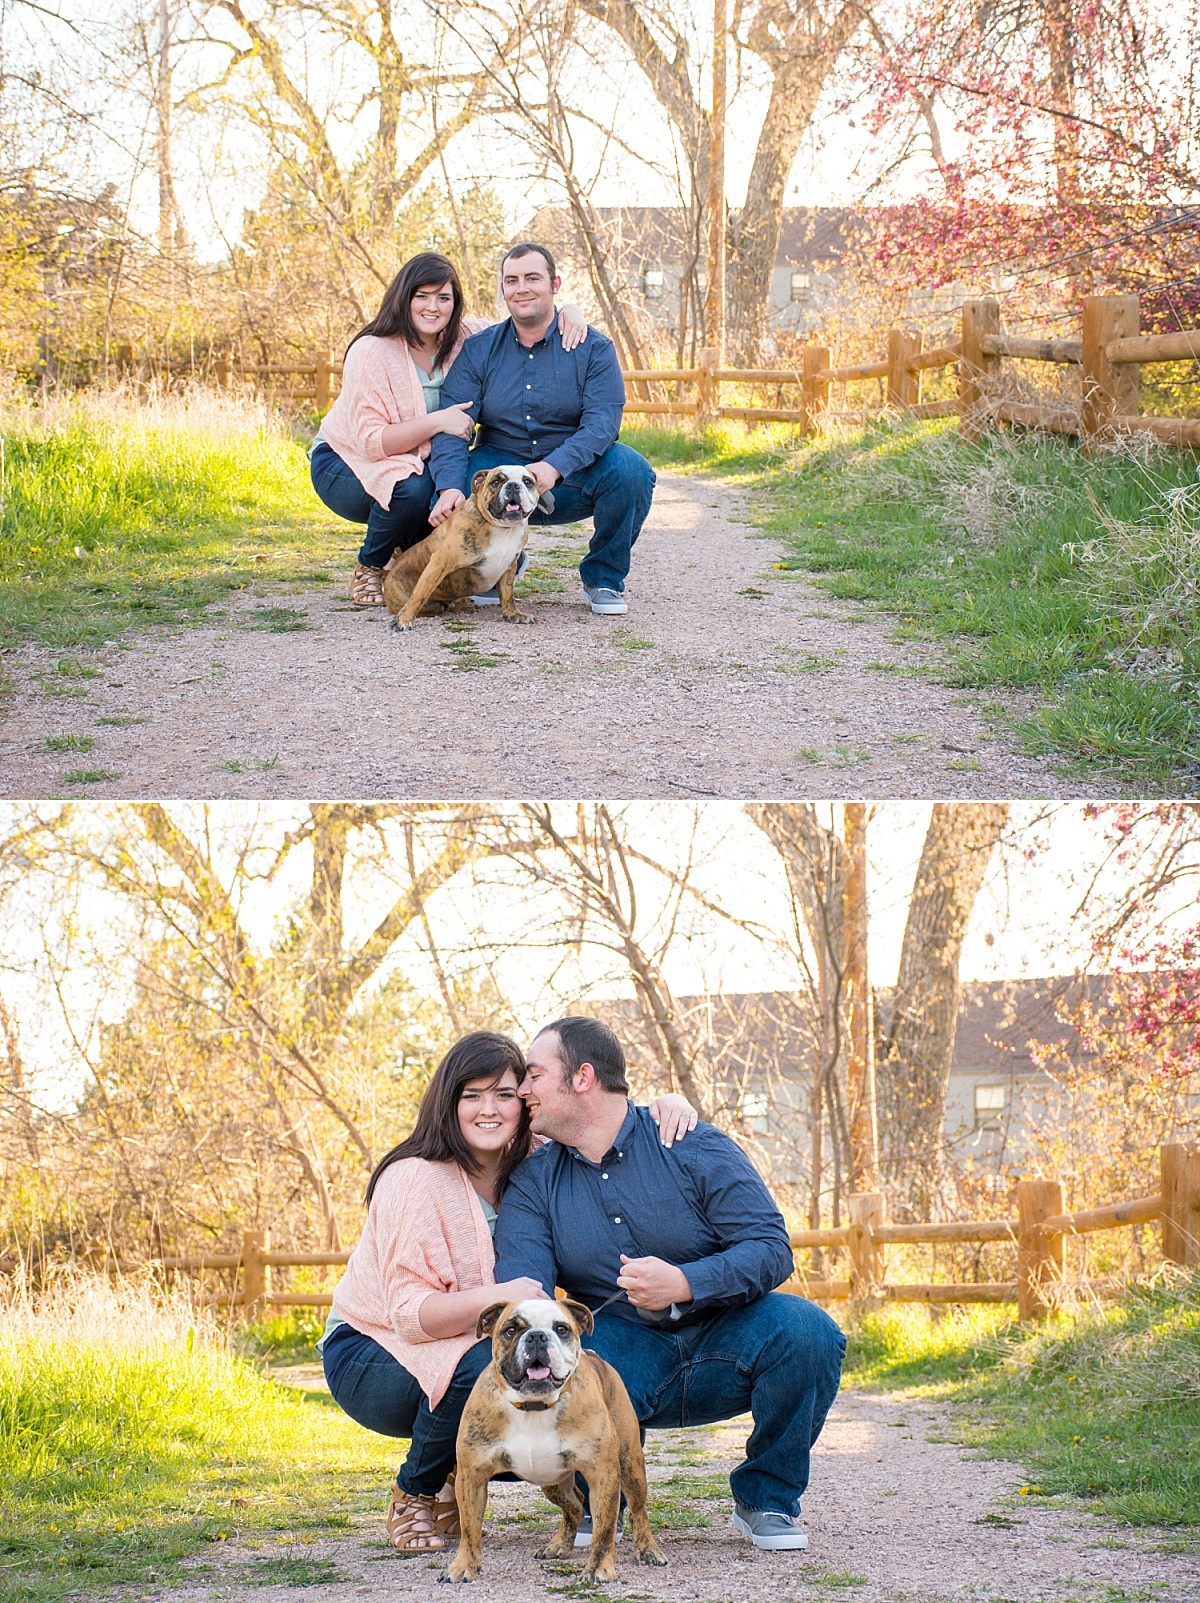 bull dog pink spring blossoms outdoor campus west rapid city south dakota engagement photos 1